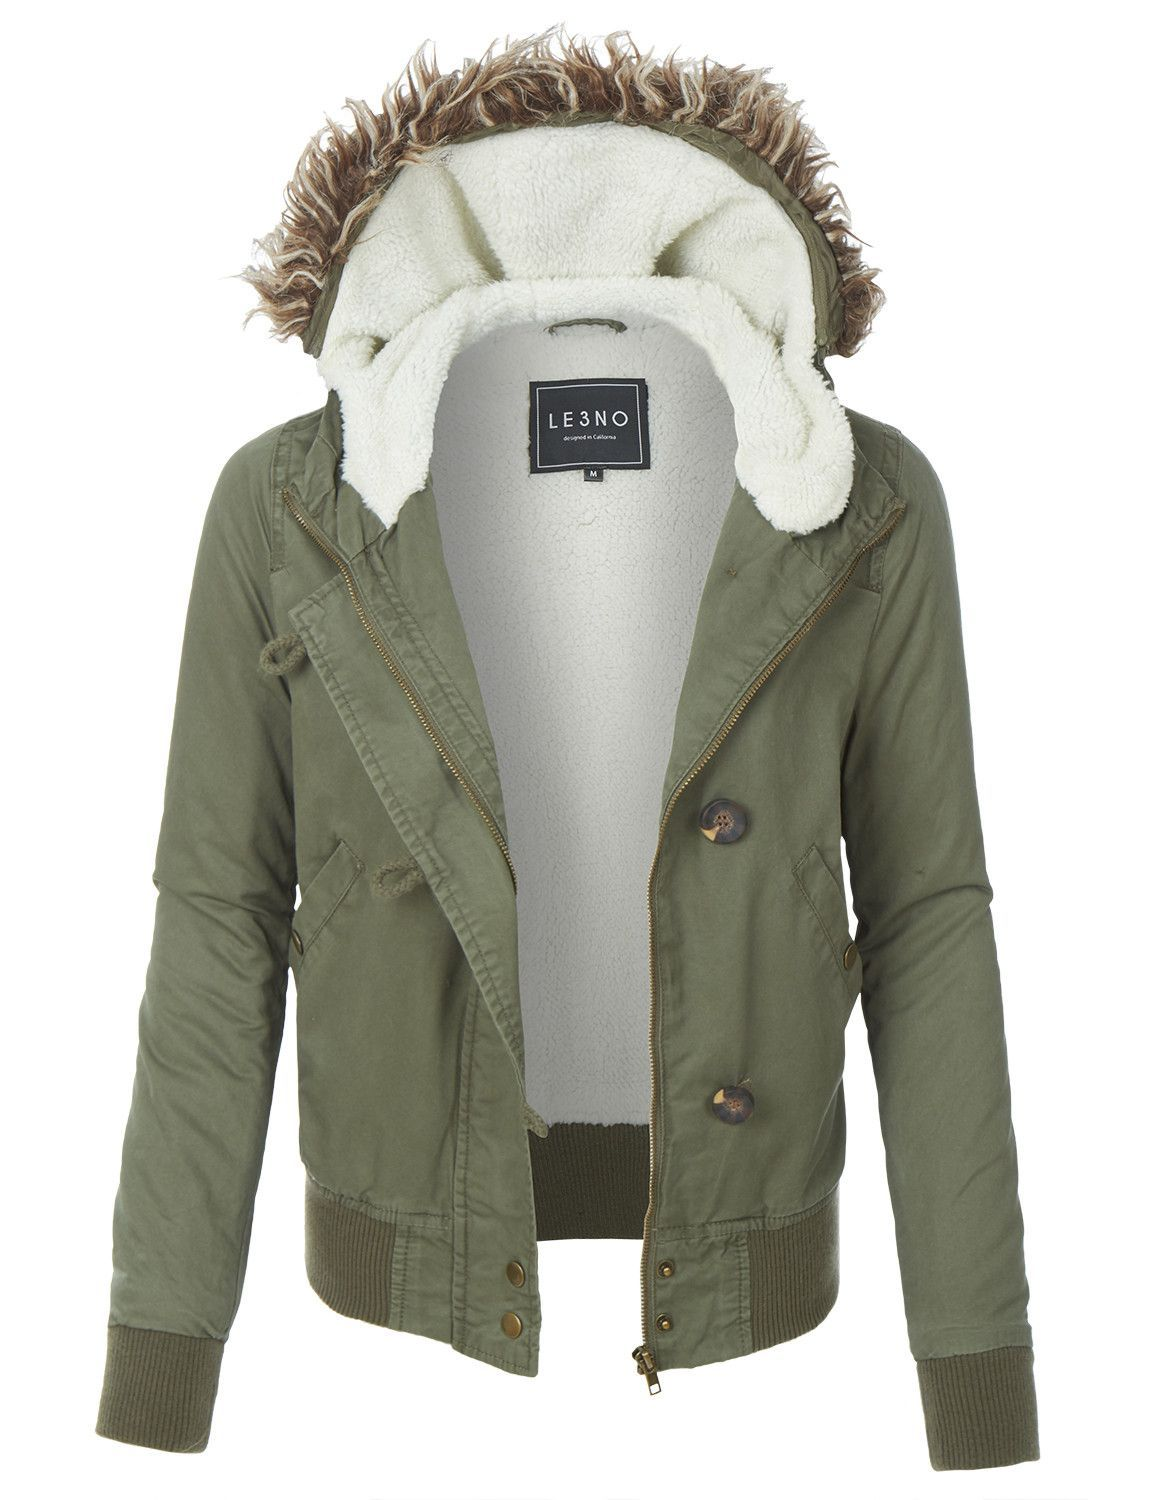 Le3no Womens Sherpa Lined Anorak Bomber Hoodie Jacket With Pockets Womens Sherpa Women Anorak Womens Anorak Jacket [ 1500 x 1150 Pixel ]